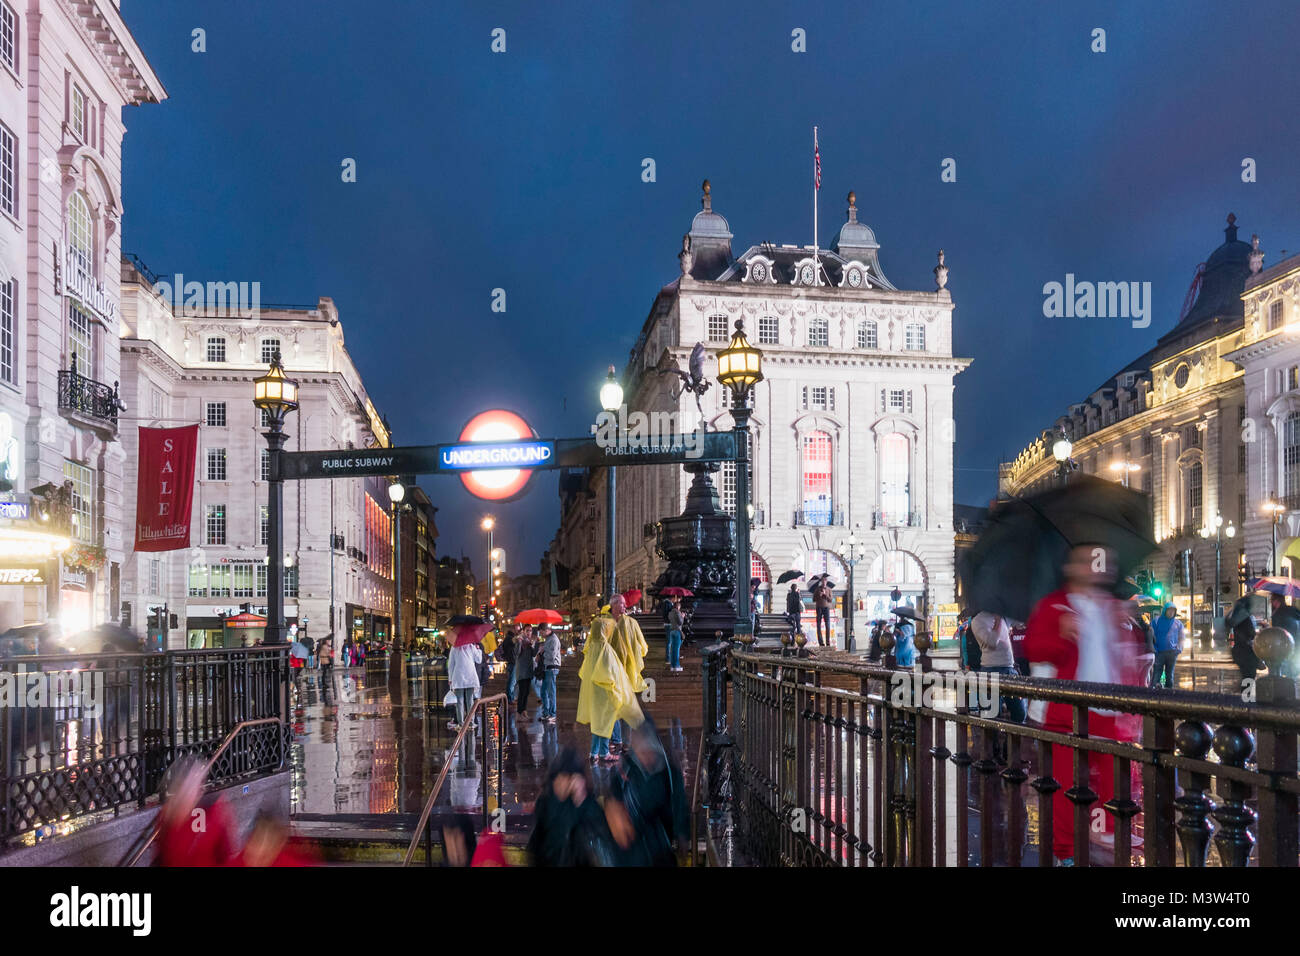 People with umbrellas, Piccadilly circus, rain, evening, Subway entrance, London, UK - Stock Image